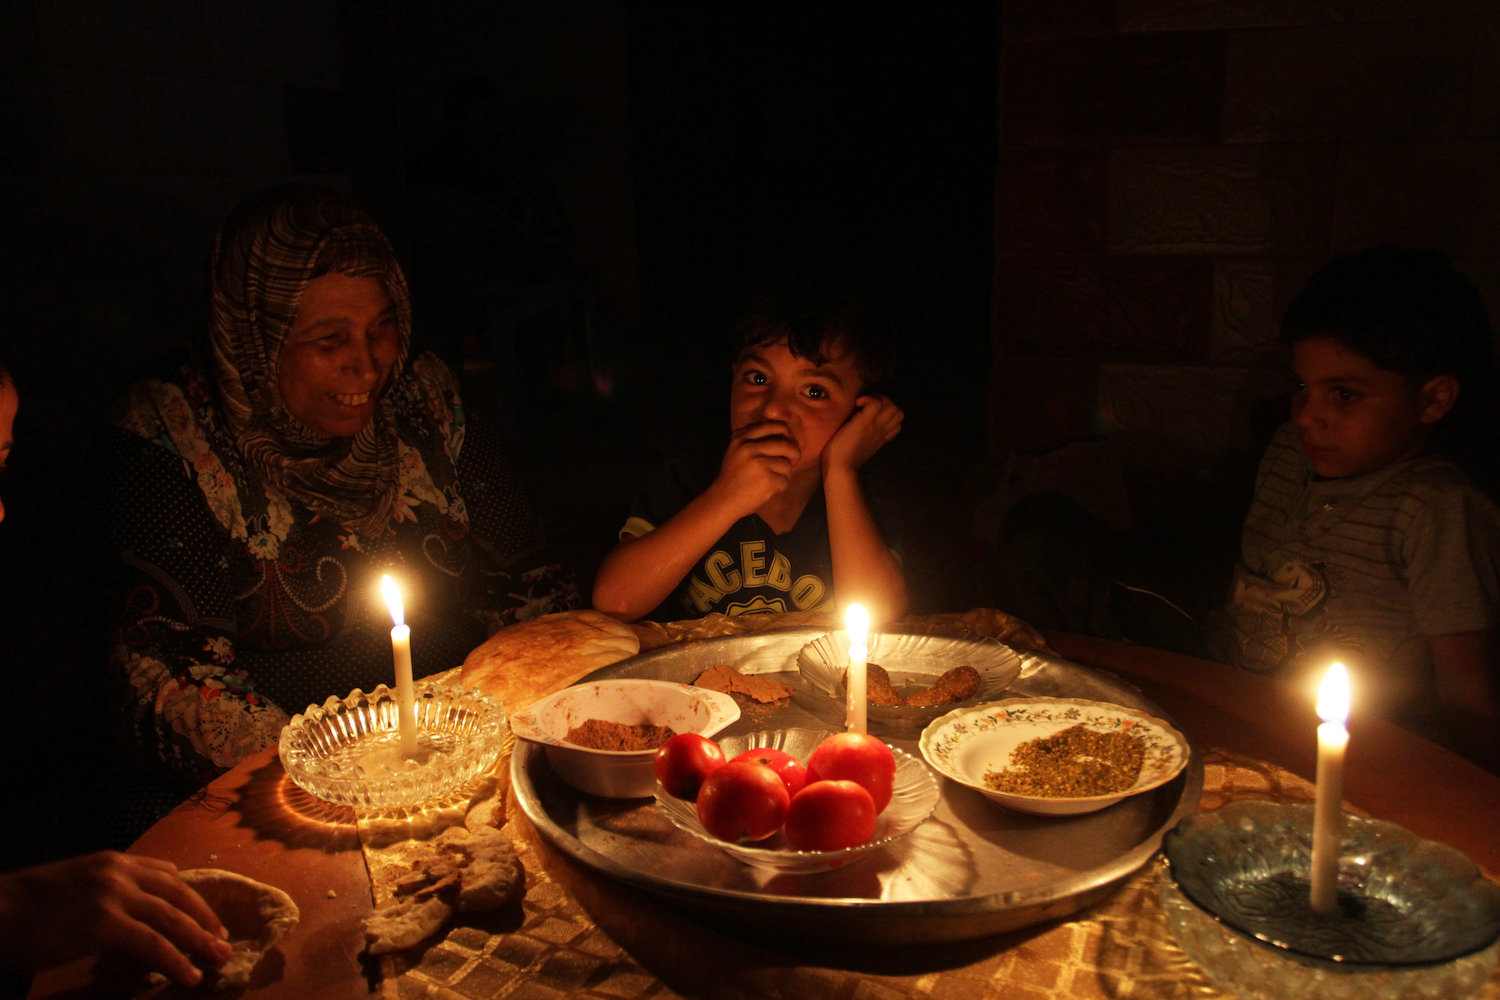 A Palestinian family eats dinner by candlelight during a power cut in the southern Gaza Strip, on July 29, 2015. (Abed Rahim Khatib/Flash90)